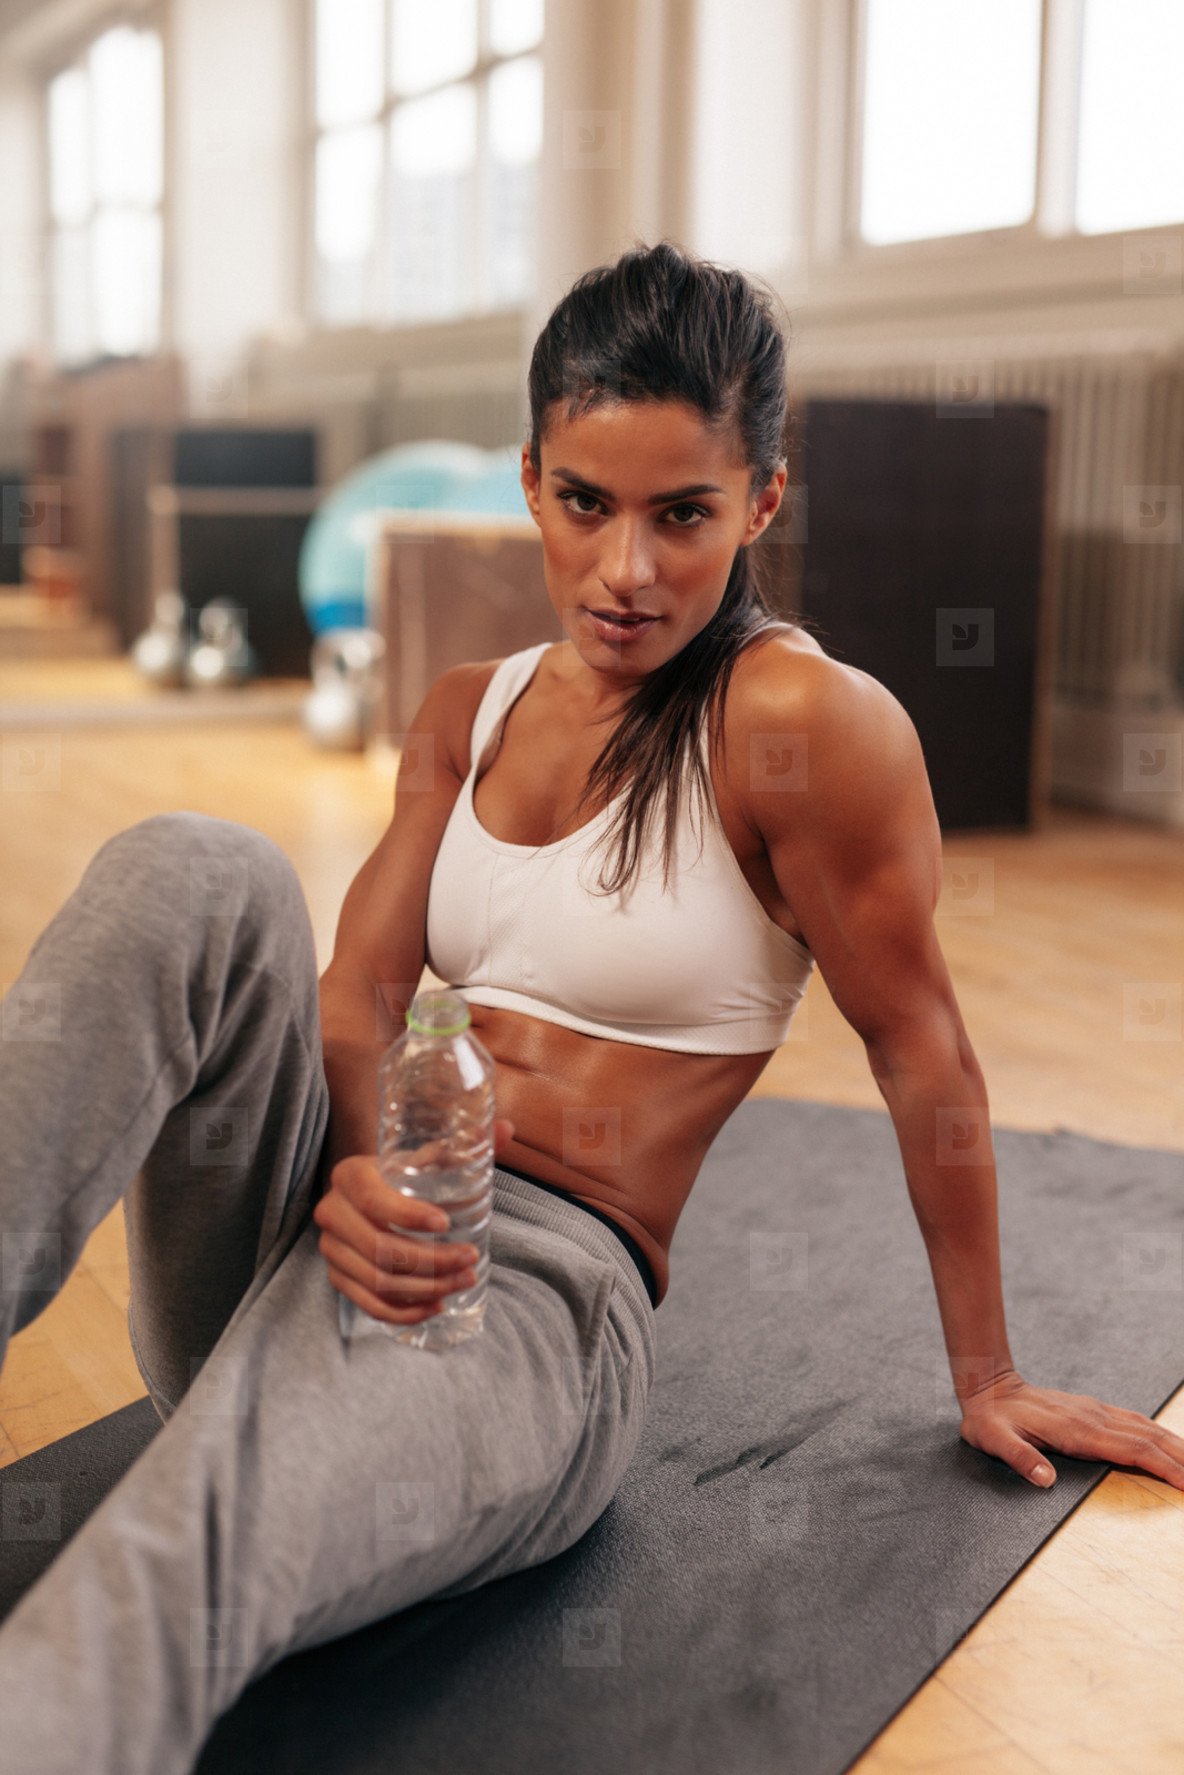 Fit woman relaxing after exercise